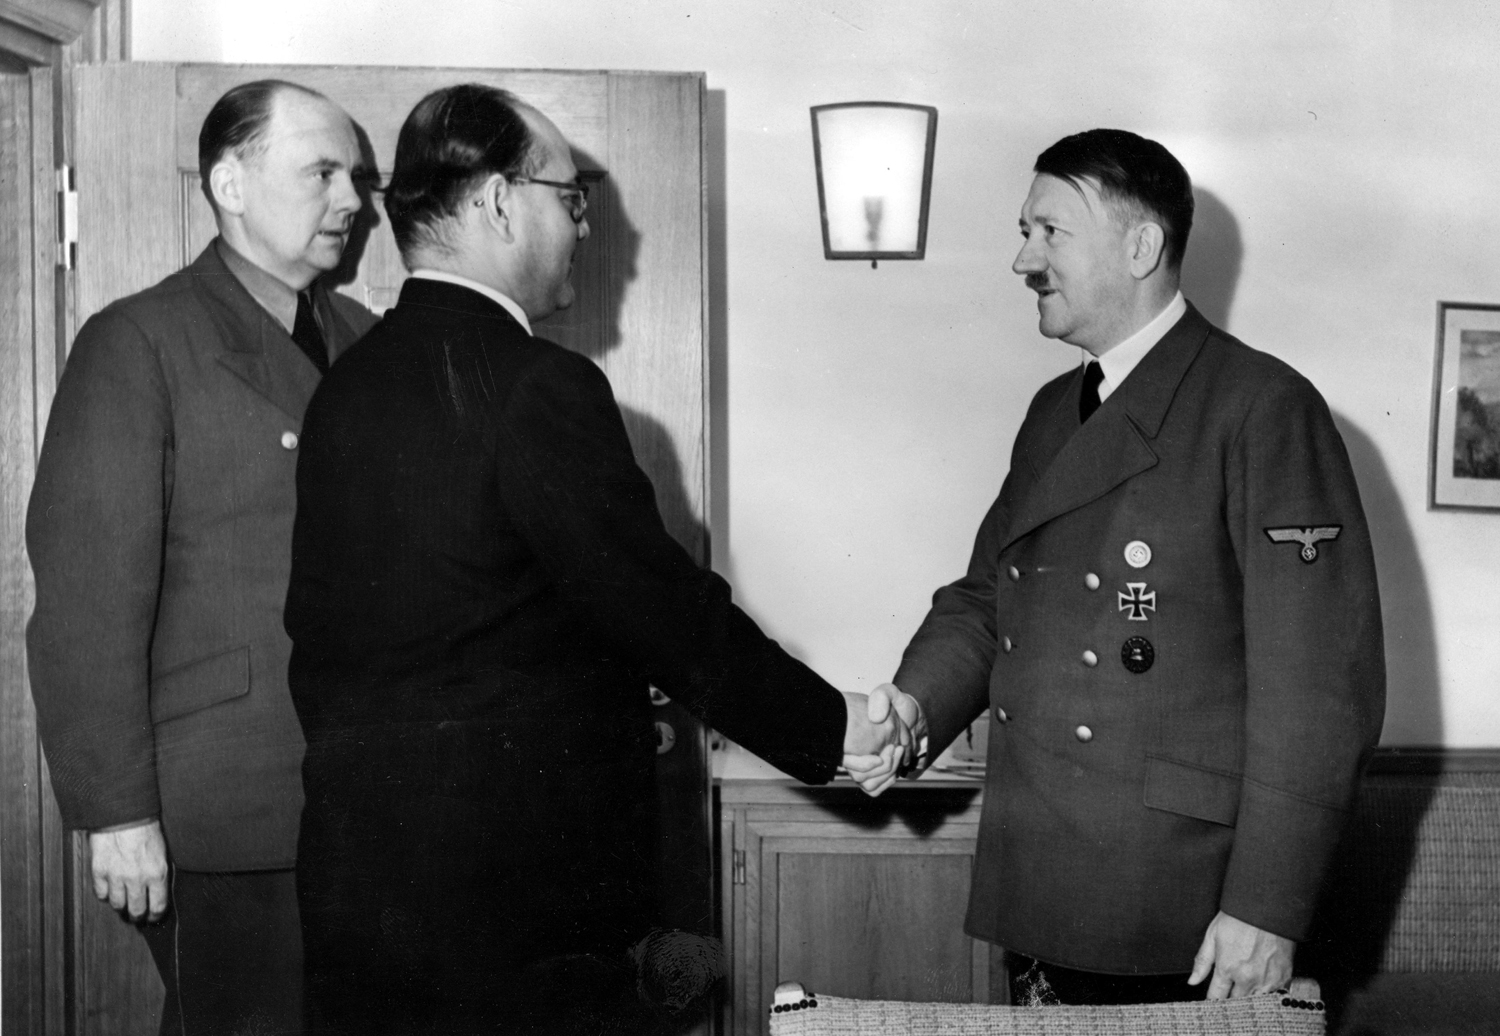 Adolf Hitler meets the Indian nationalist leader Subhas Chandra Bose